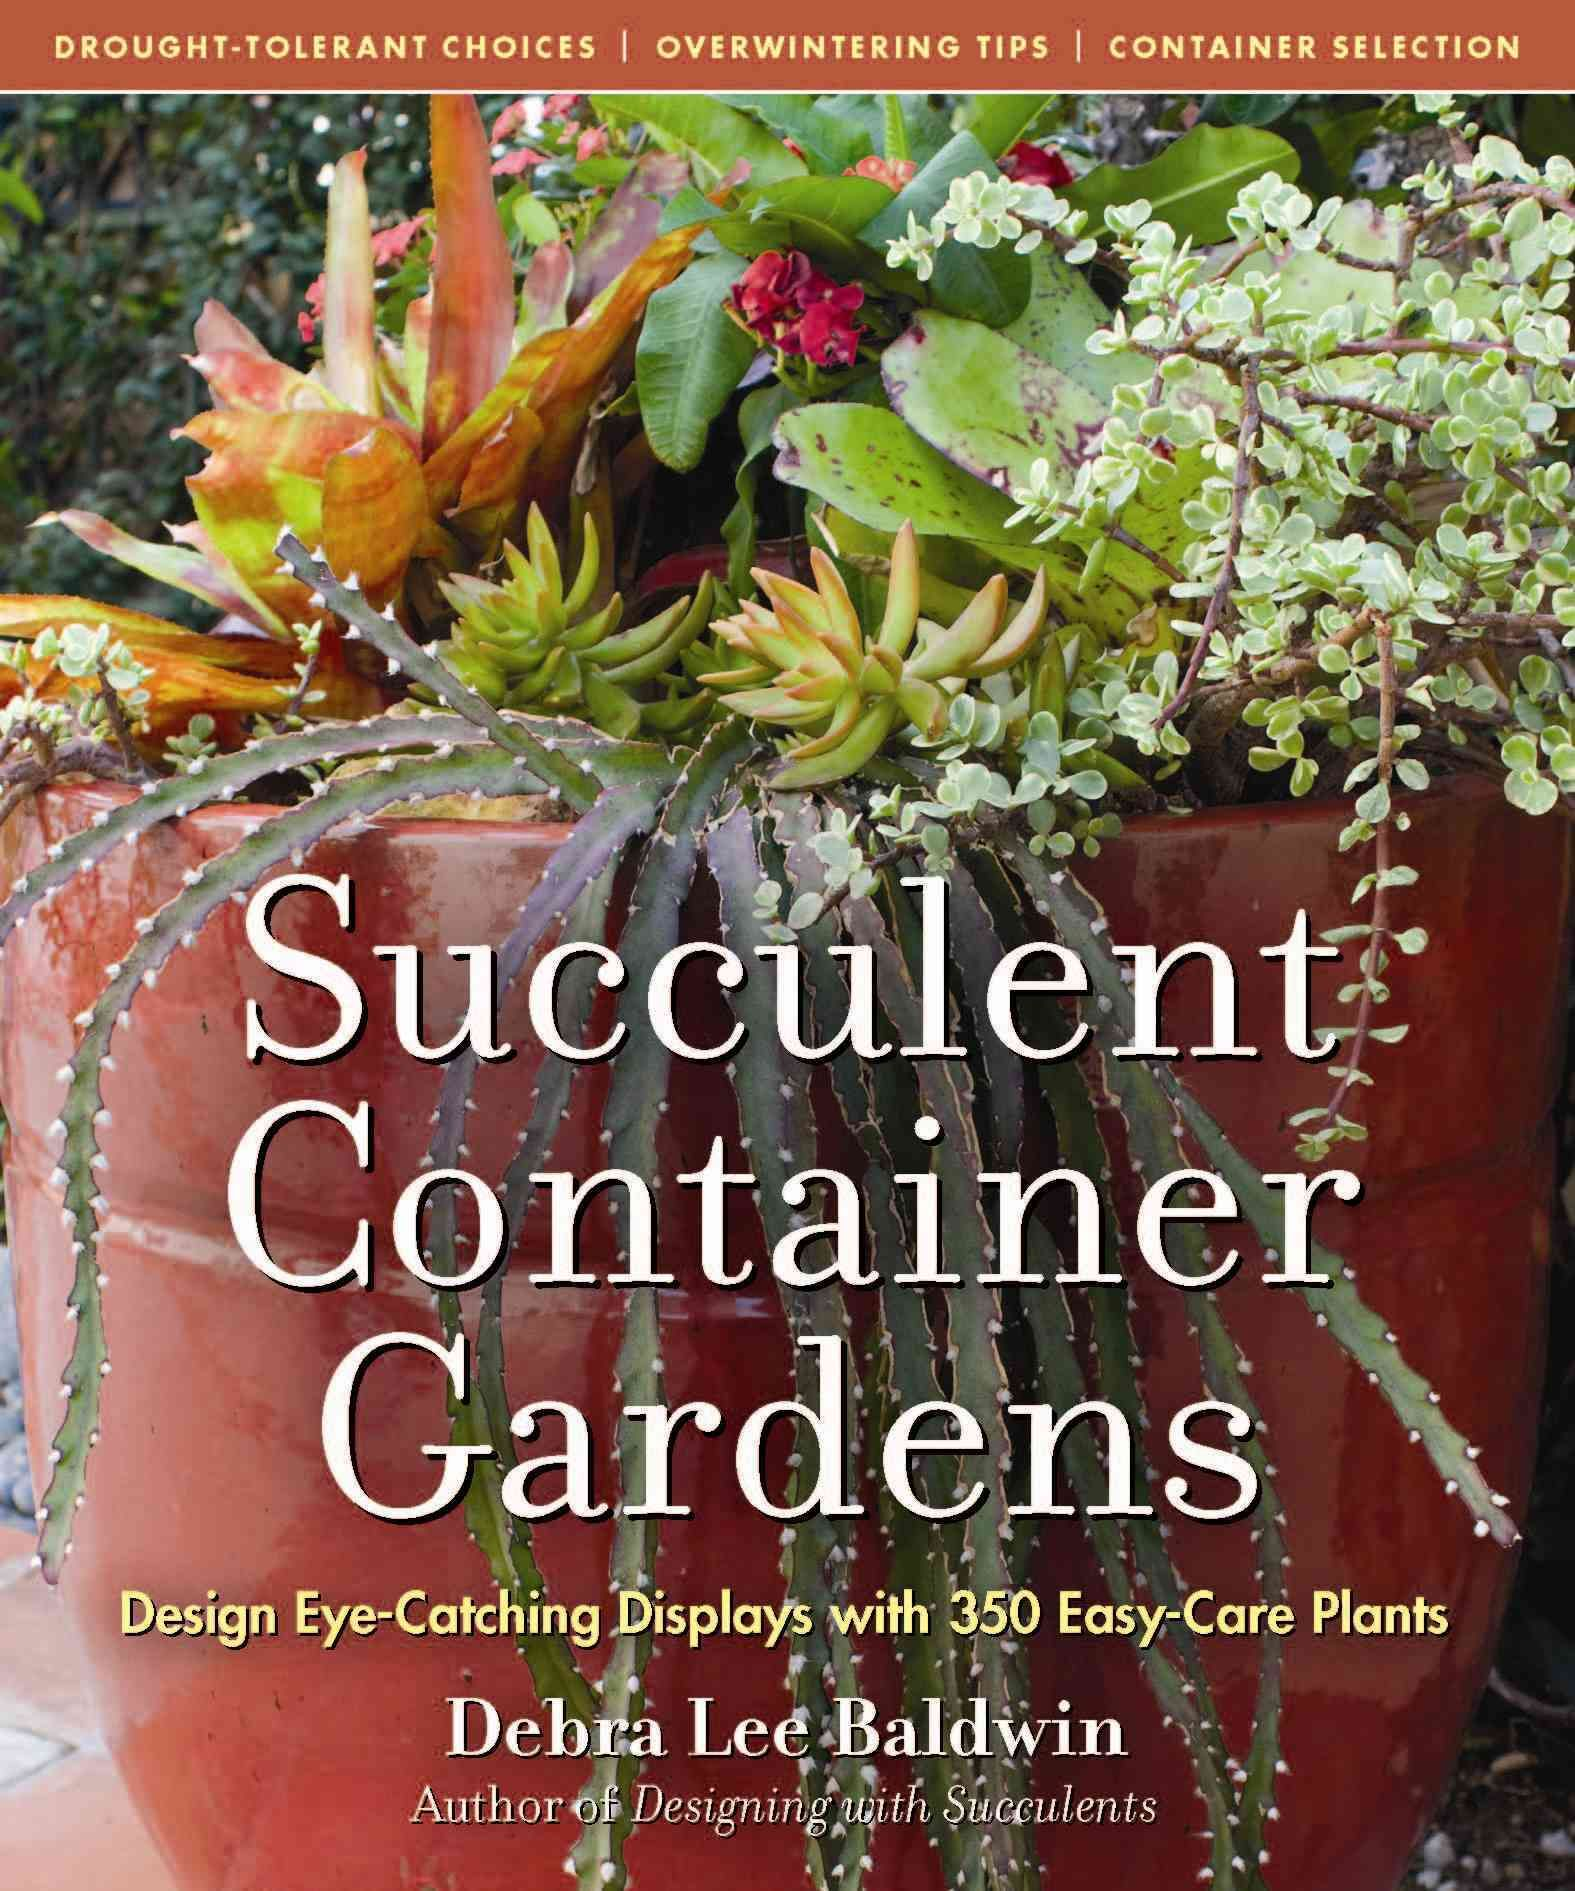 Succulent Container Gardens: Design Eye-Catching Displays